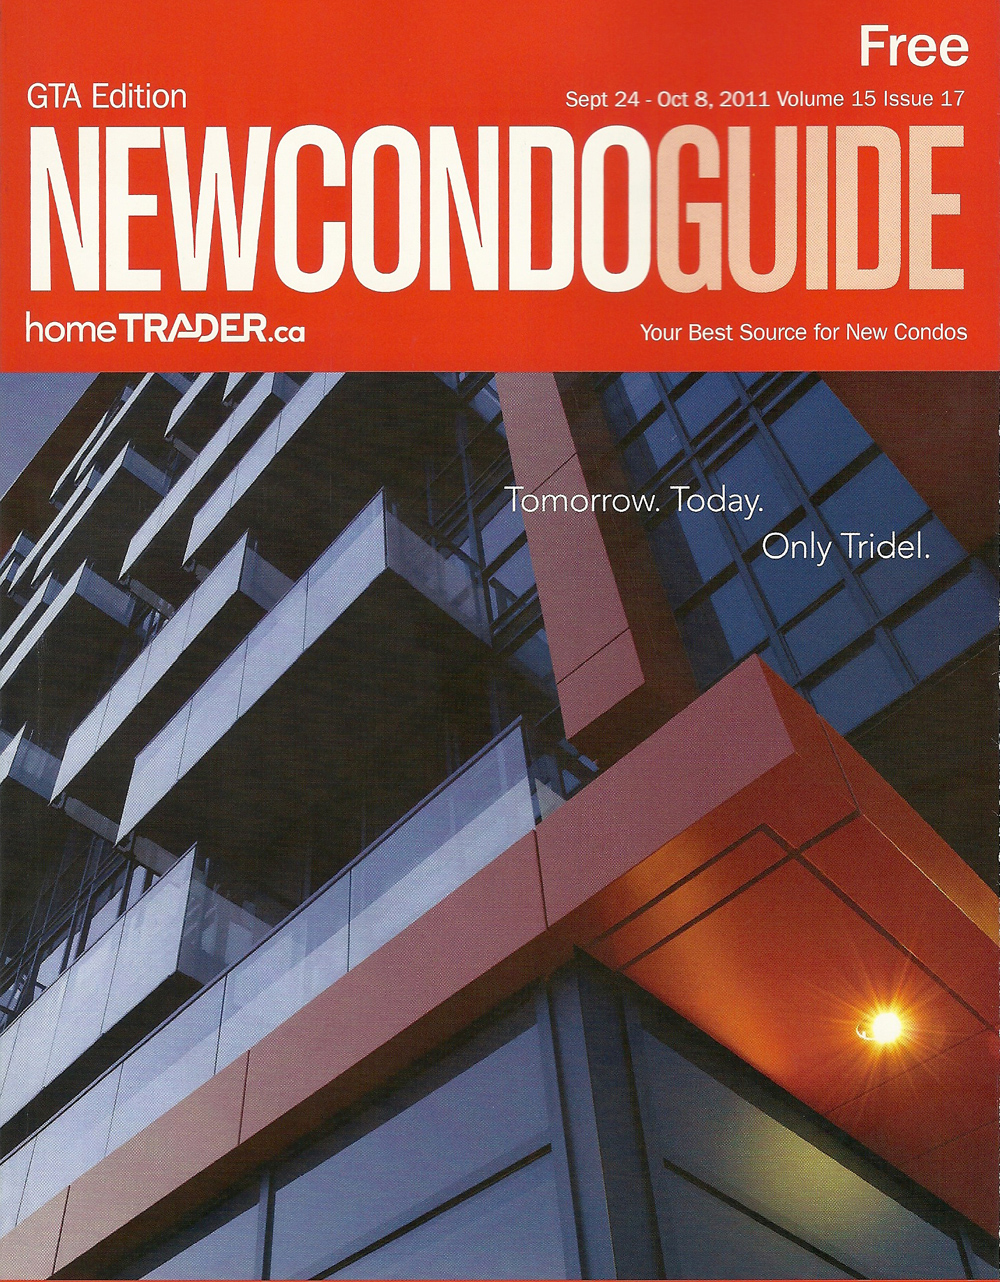 New Condo Guide September 24 - October 8 2011 Cover